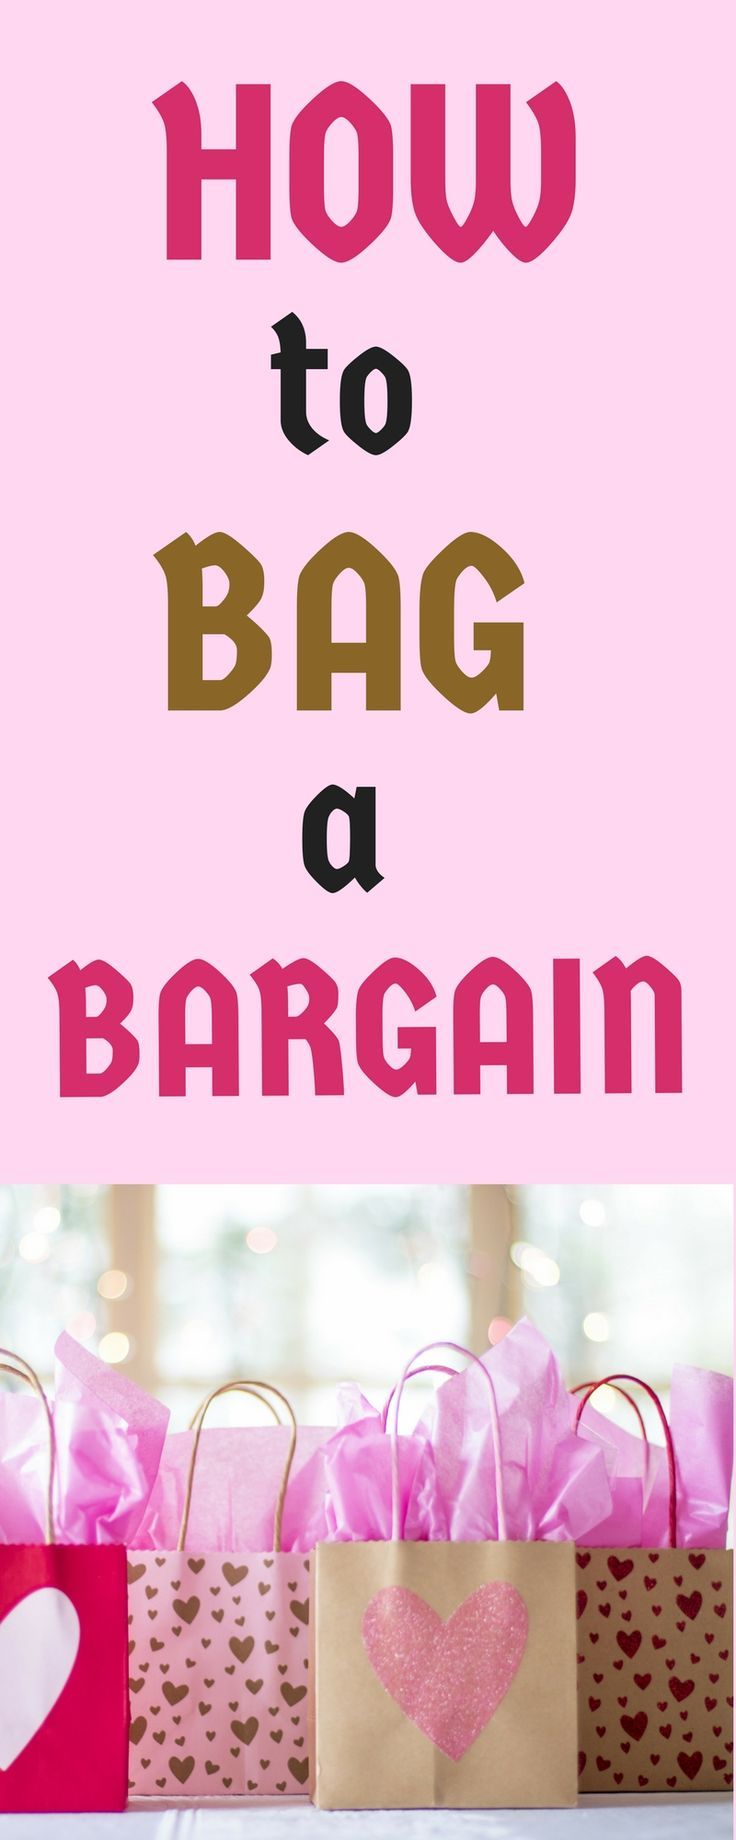 ways to save money money saving ideas online bargains outlet shopping sales f824babb589